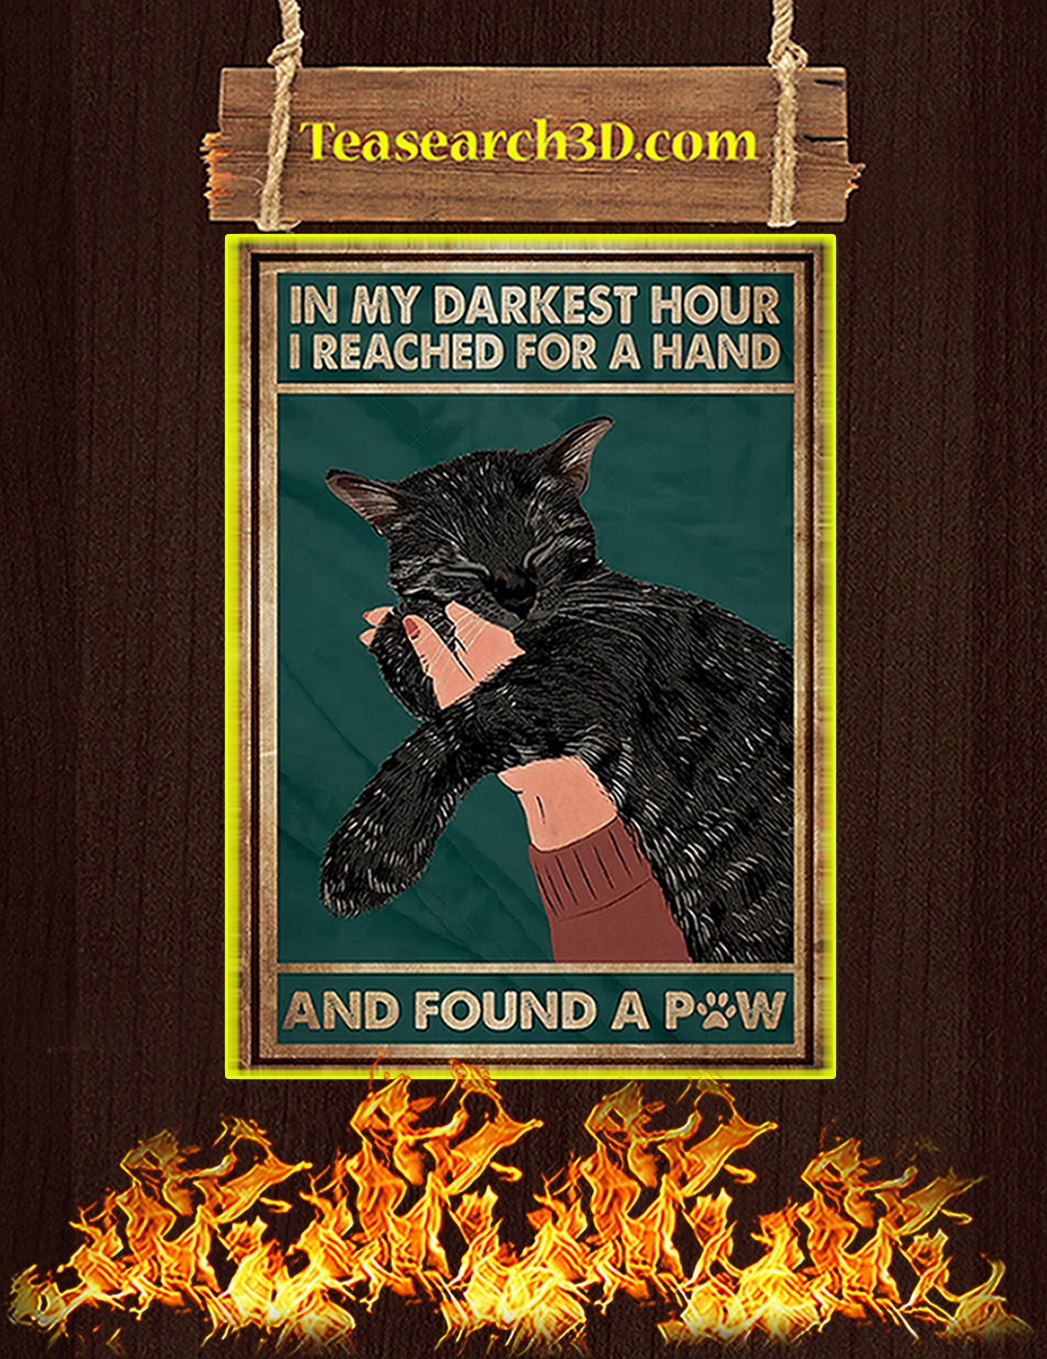 Black cat in my darkest hour I reached for a hand and found a paw poster A1